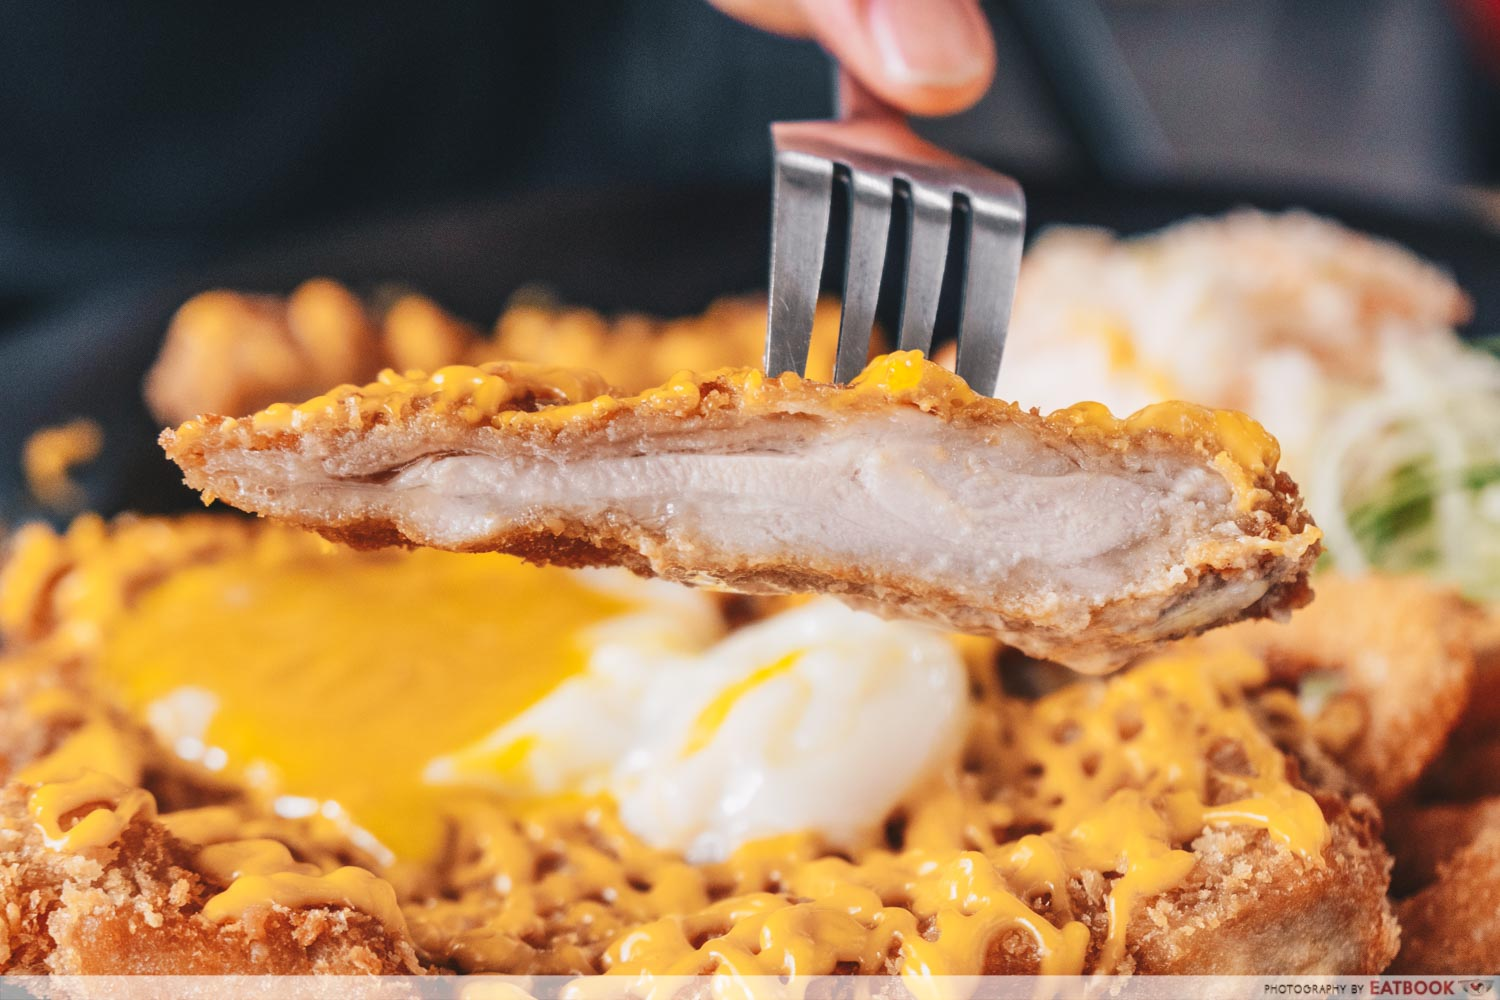 Skinny Chef - Cross-section of chicken cutlet